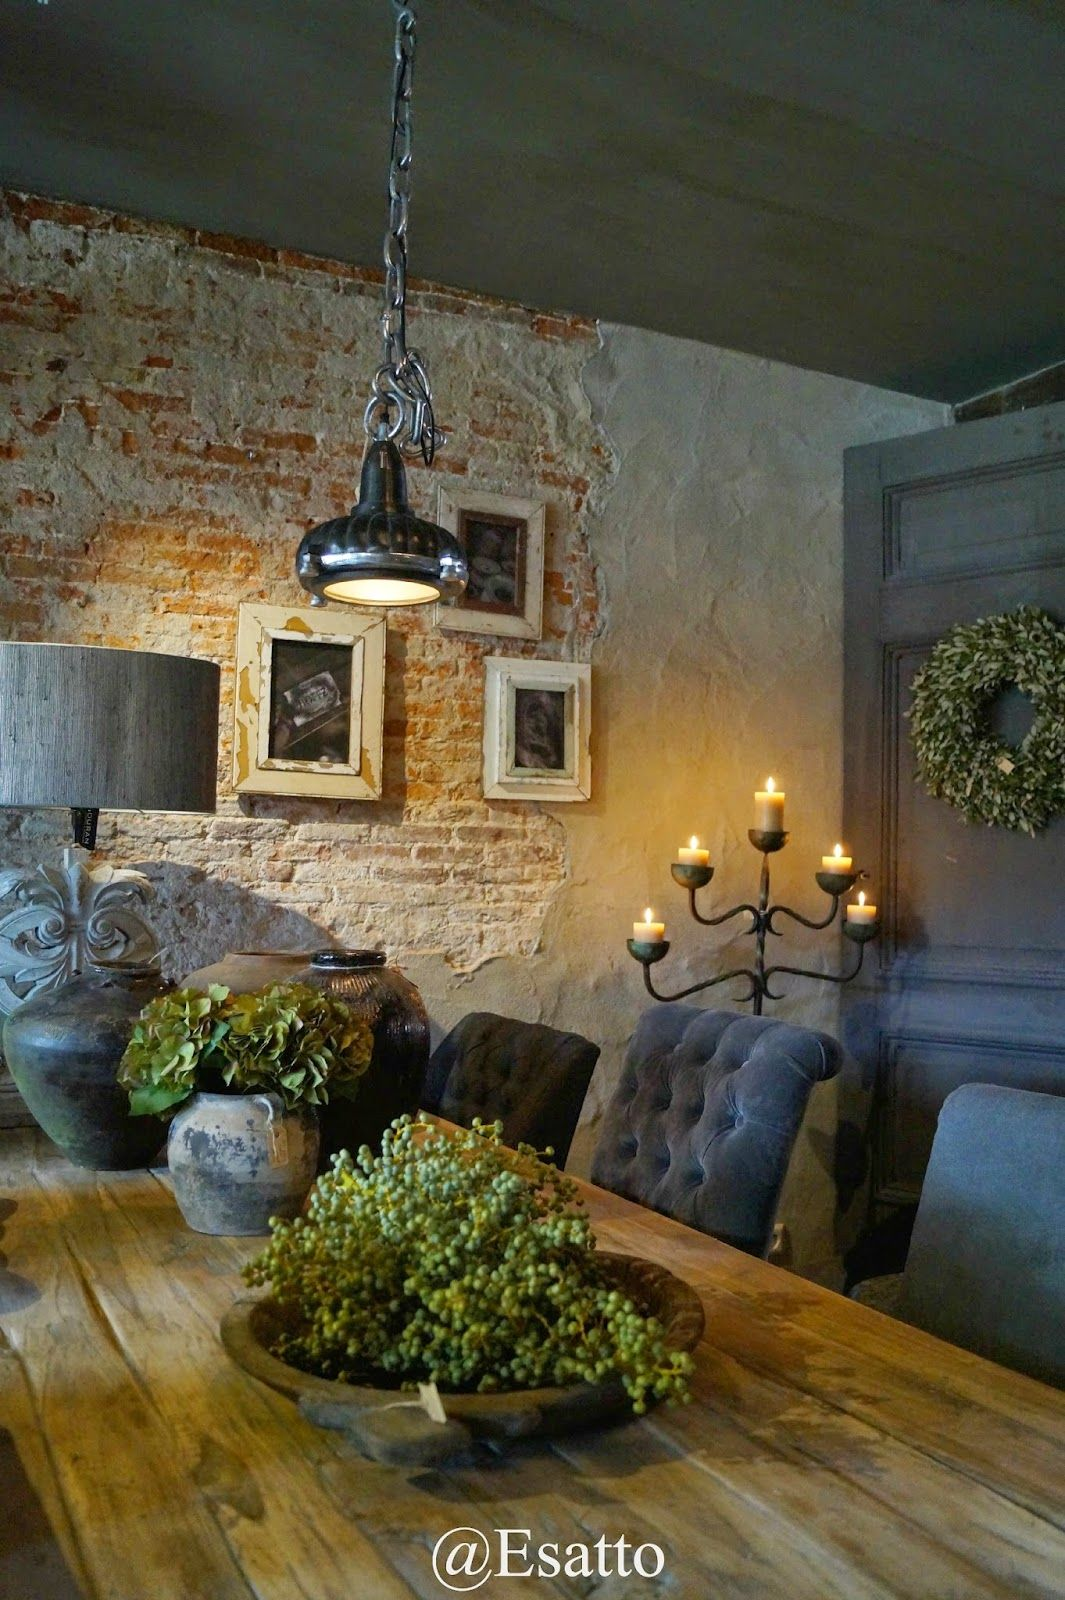 Love the exposed brick and rustic farm table with